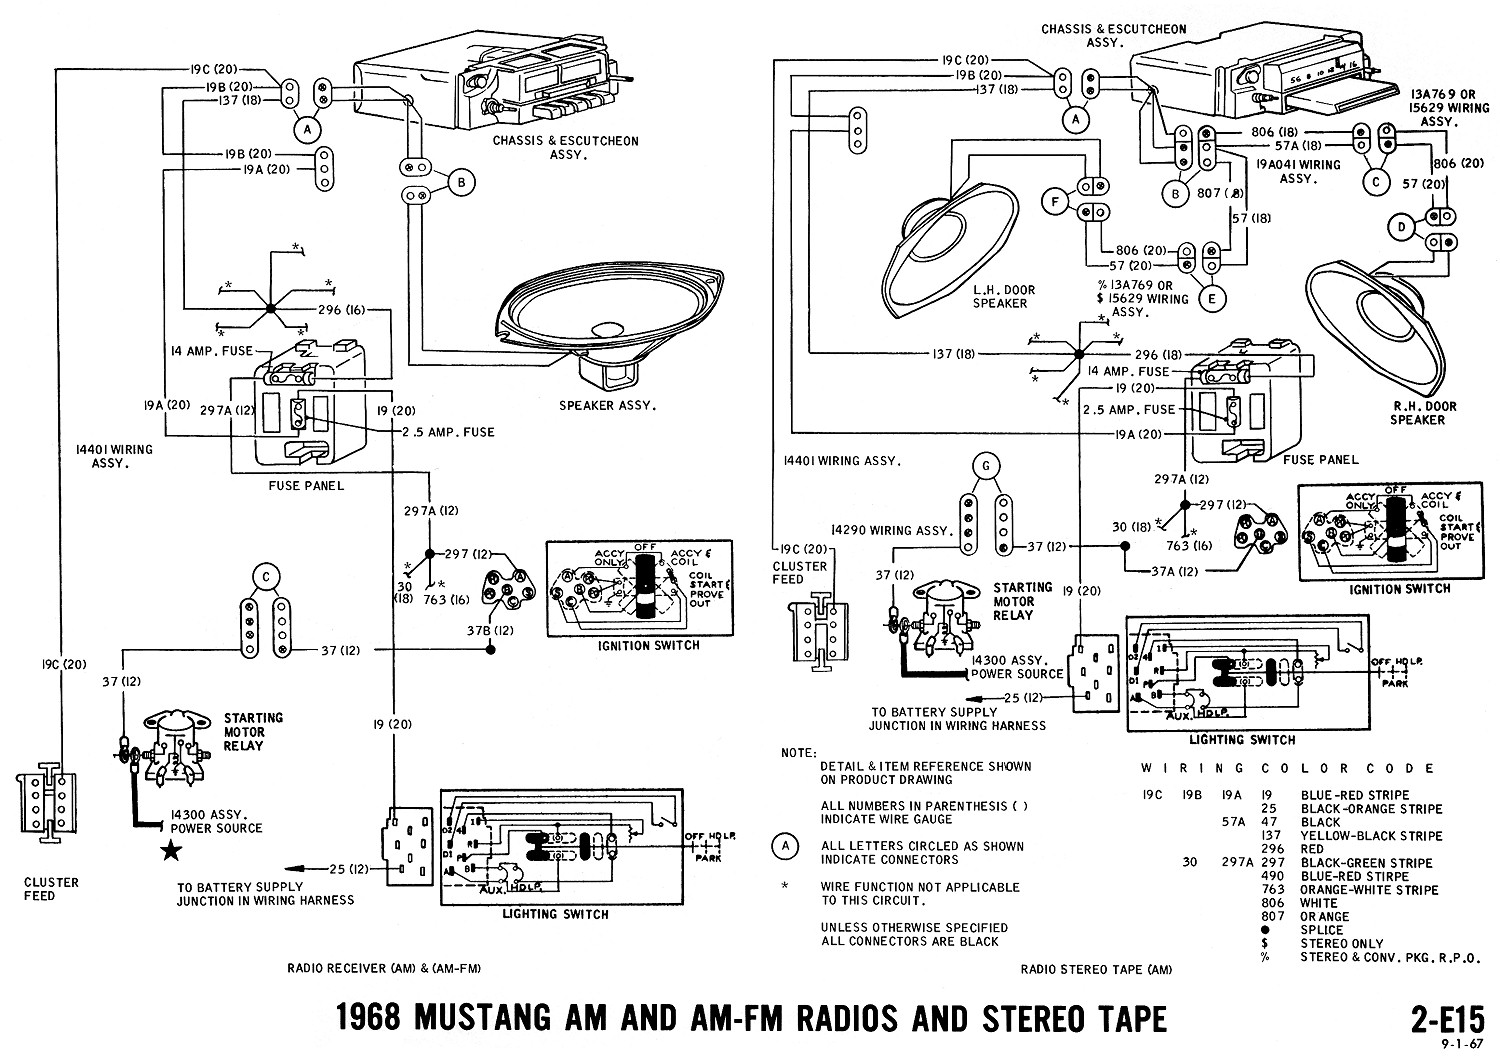 1968 Mustang Wiring Diagrams on 2015 gt500 cobra